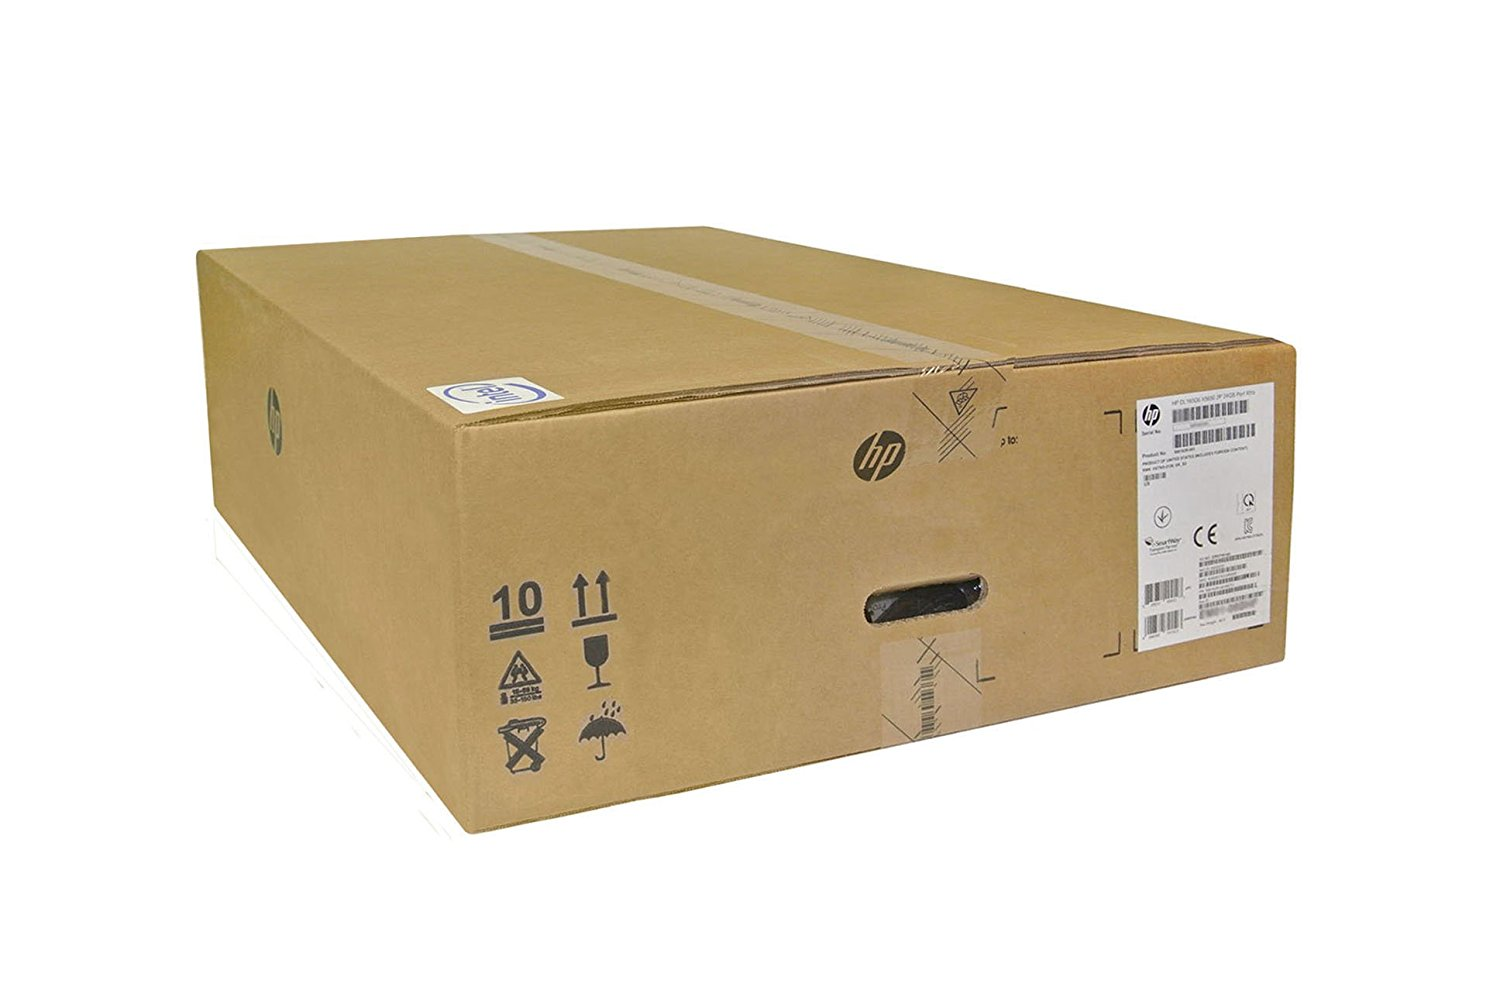 HP DL160 G6 Hot Plug 8SFF 500W CTO Rack Chassis 593352-B21